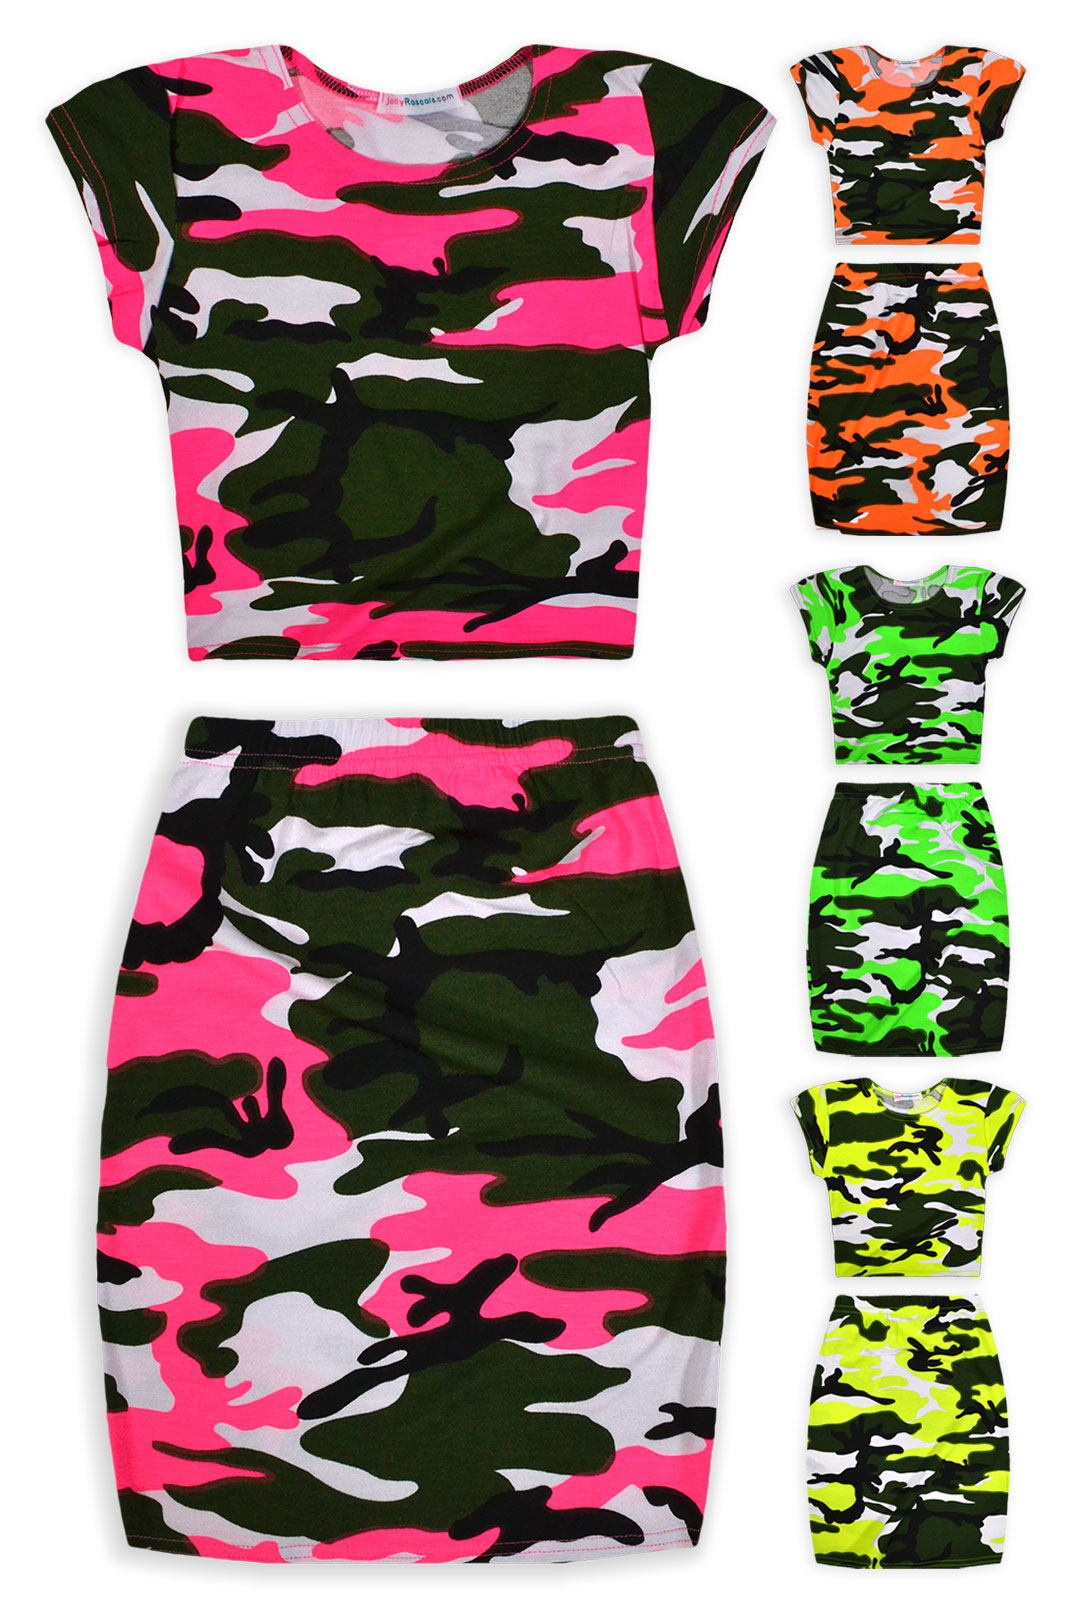 Girls Neon Camo Crop Top And Skirt Outfit New Kids Summer